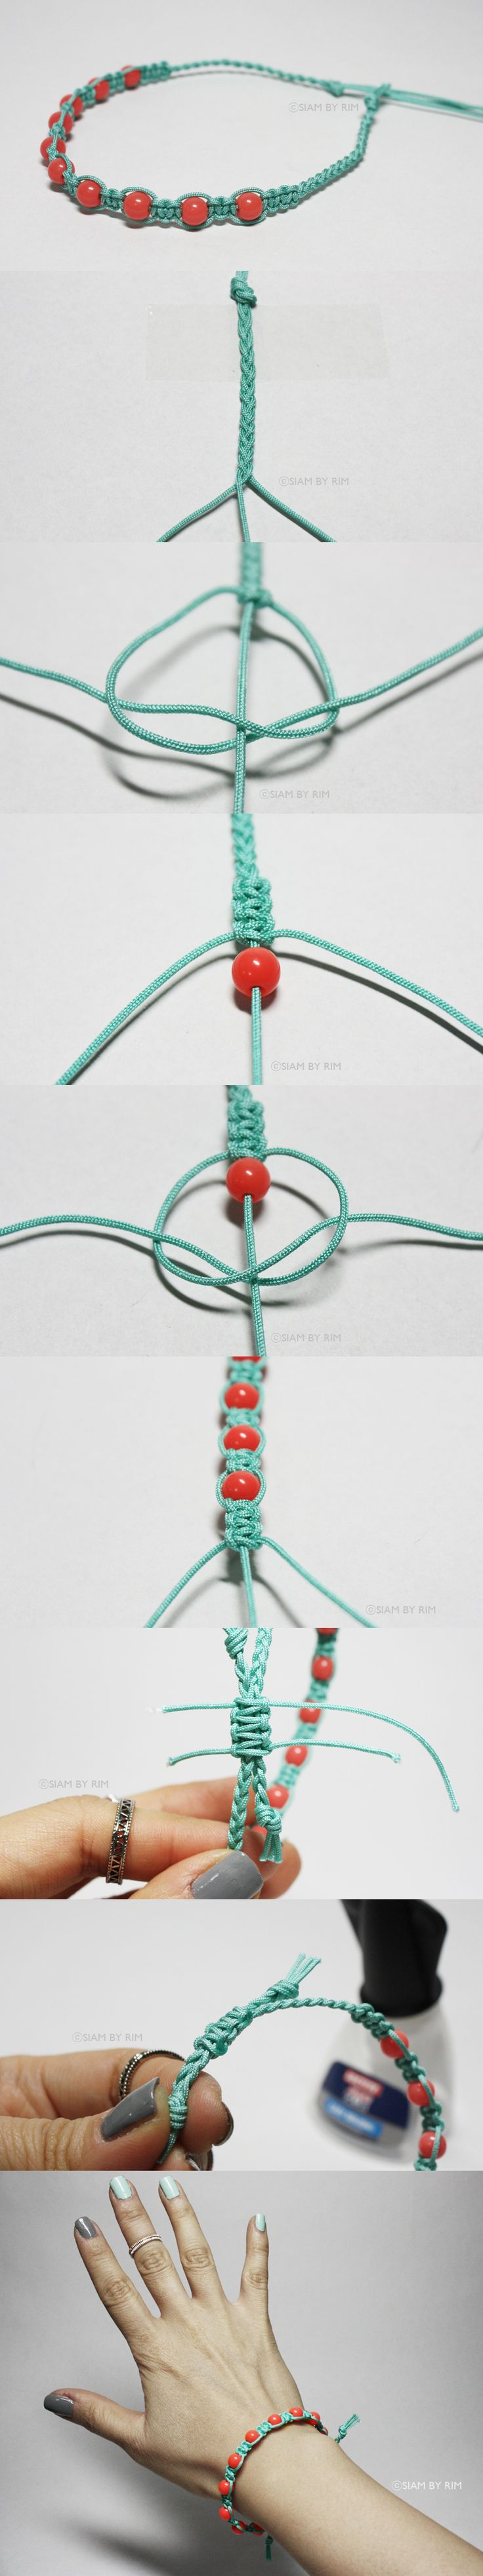 Braided and knotted bracelet/How to make a bracelet (Diy Jewelry)